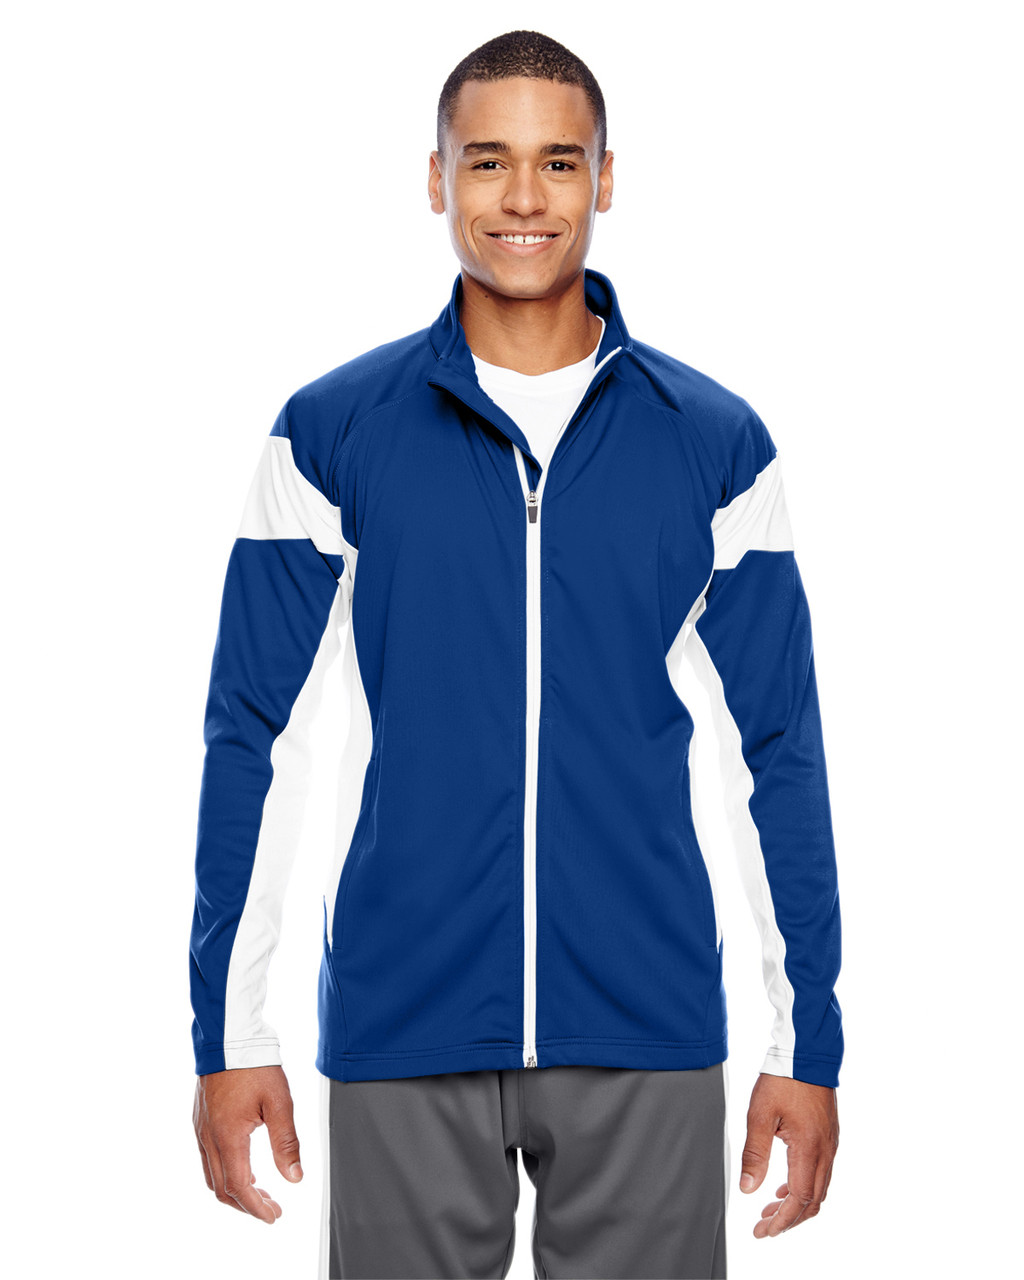 Royal/White - TT34 Team 365 Men's Performance Full-Zip Jacket | Blankclothing.ca